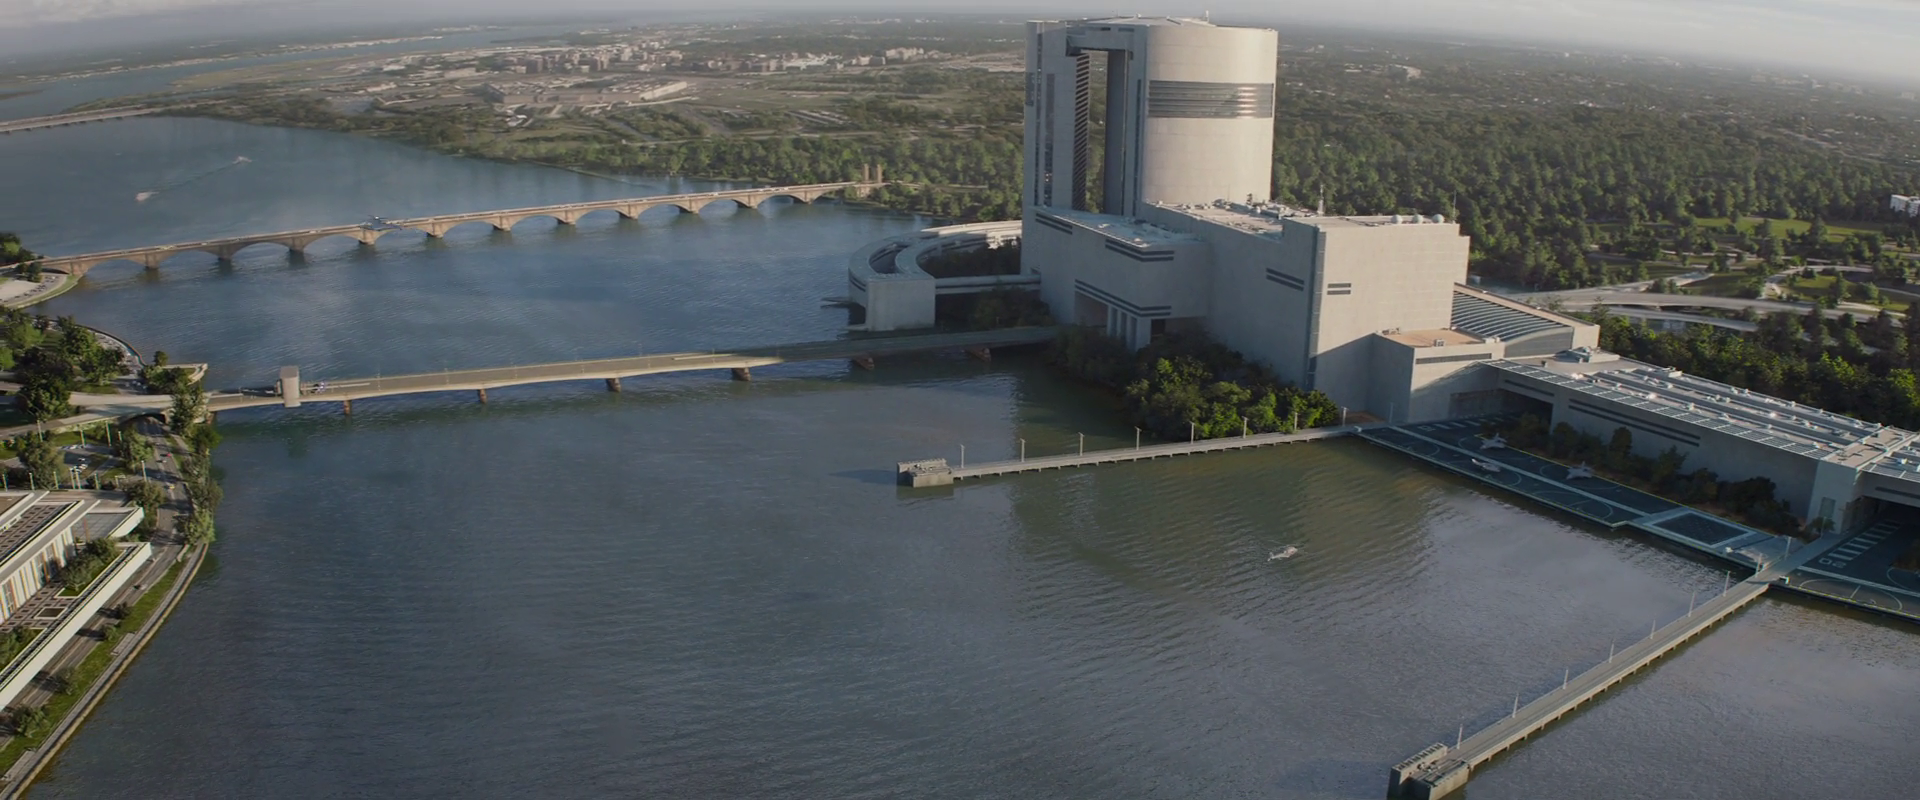 Captain America: Winter Soldier  (2014), view of Triskelion, looking south.